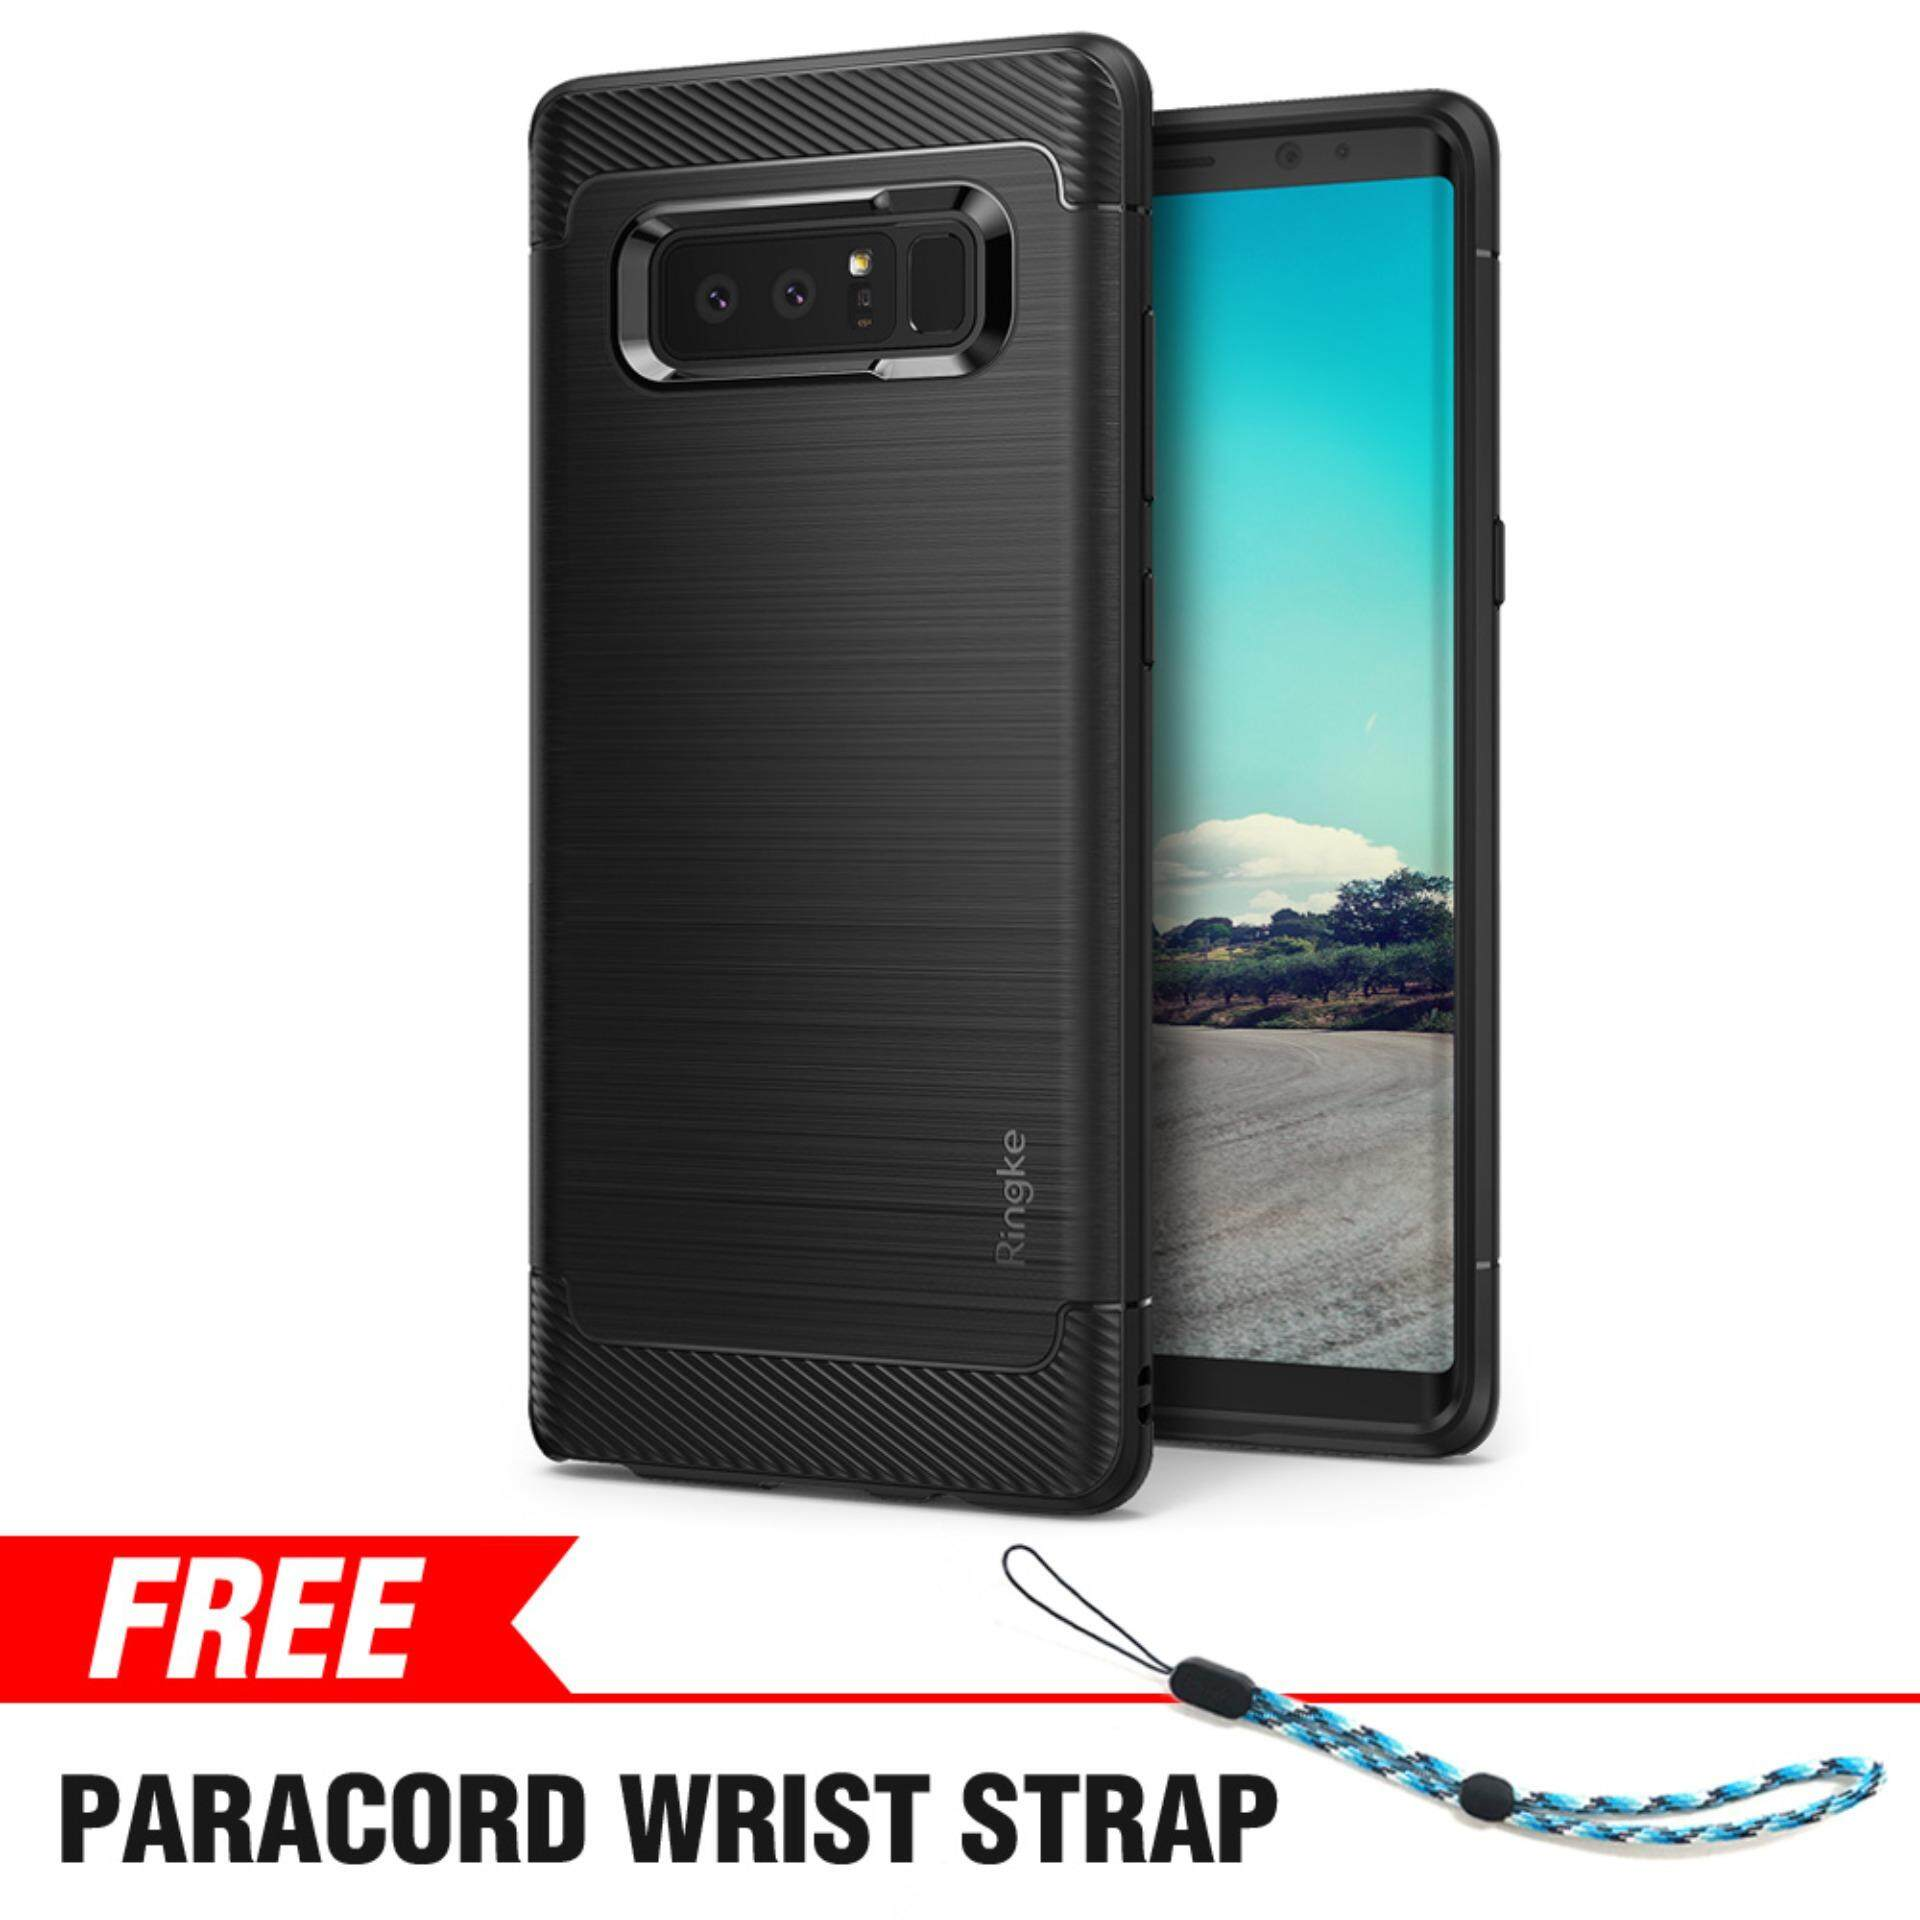 Ringke Phone Cases Philippines Cellphone For Sale Rearth Samsung Galaxy S6 Fusion Crystal View Prices Reviews Lazada